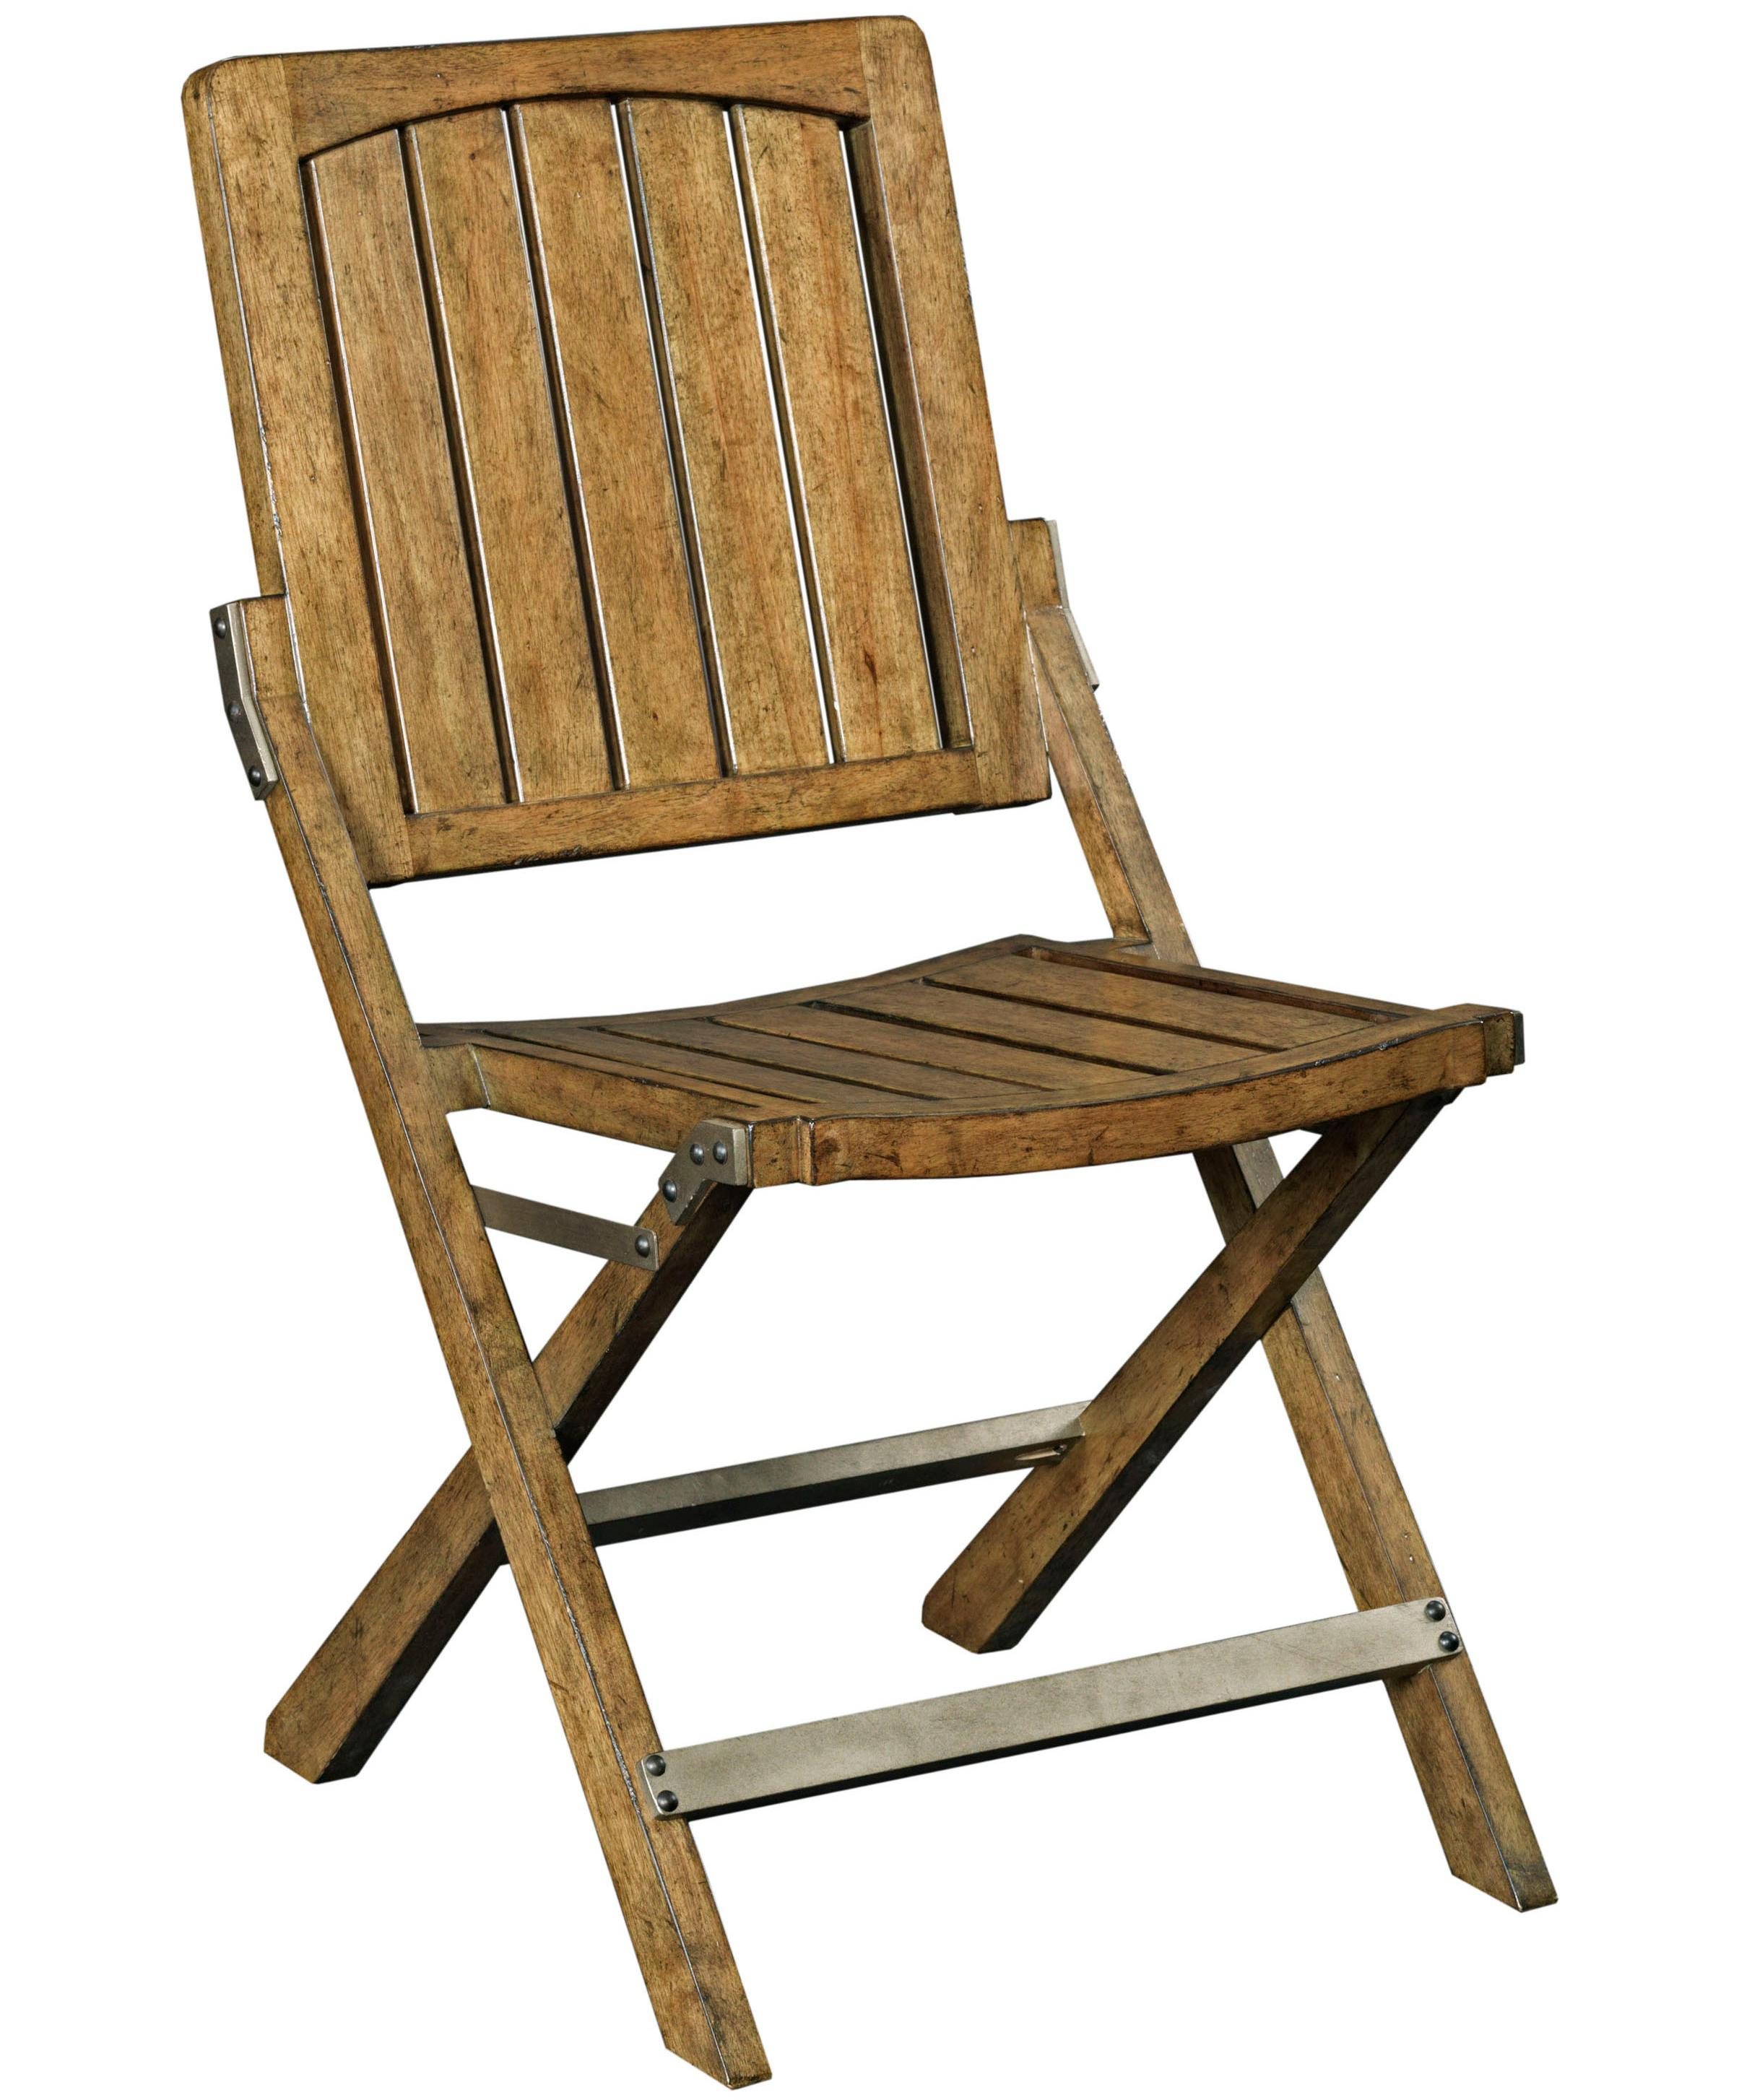 Broyhill Furniture New Vintage Cafe Wood Slat Chair - Item Number: 4808-583